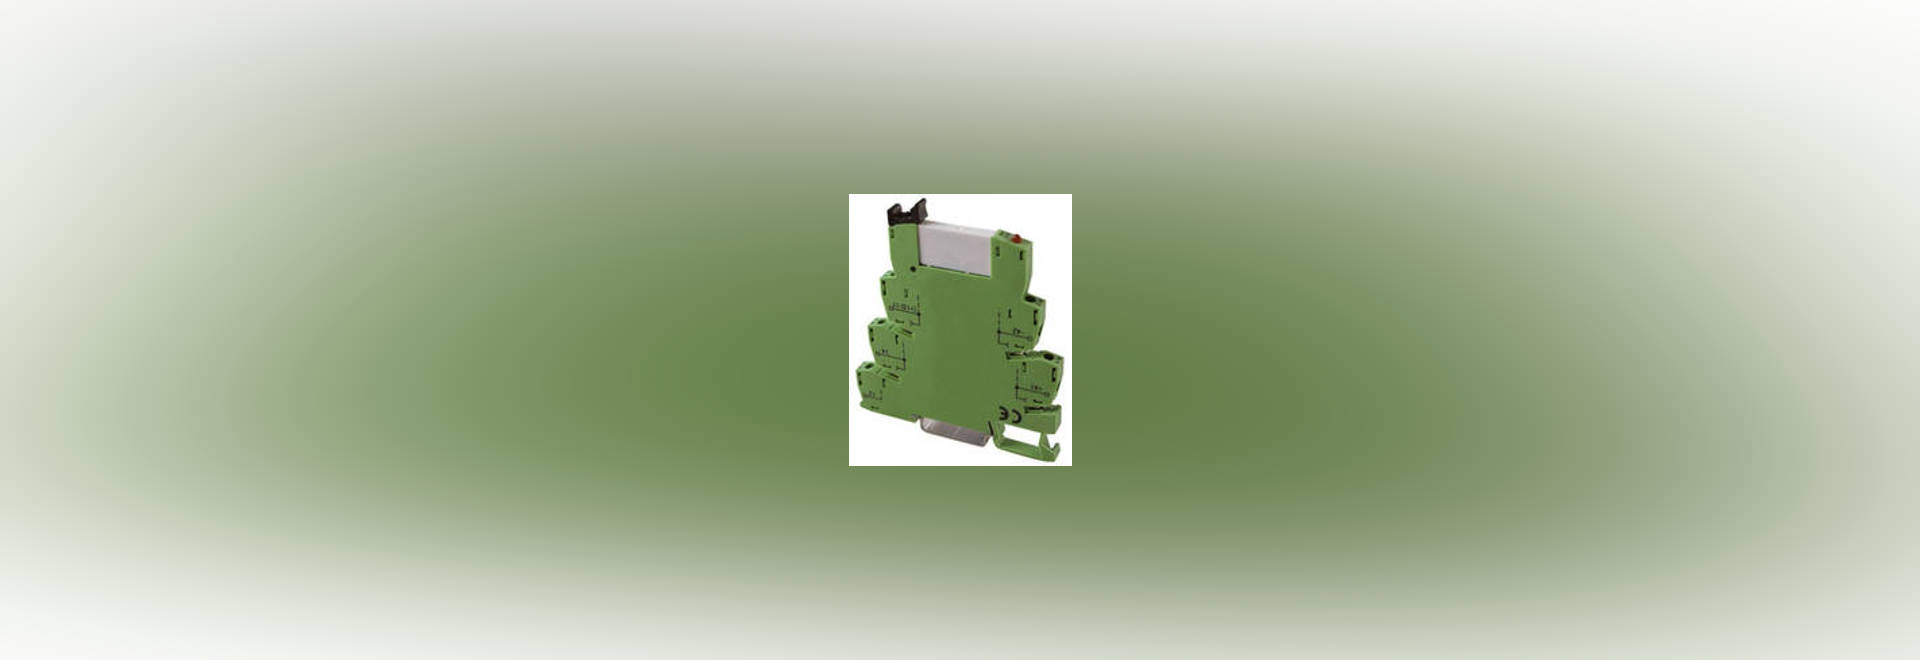 Terminal Block Industrial Control Relays Are Din Rail Mounted Common In Relay With Pluggable Jumpers To Facilitate Bridging Inputs And Outputs Plc